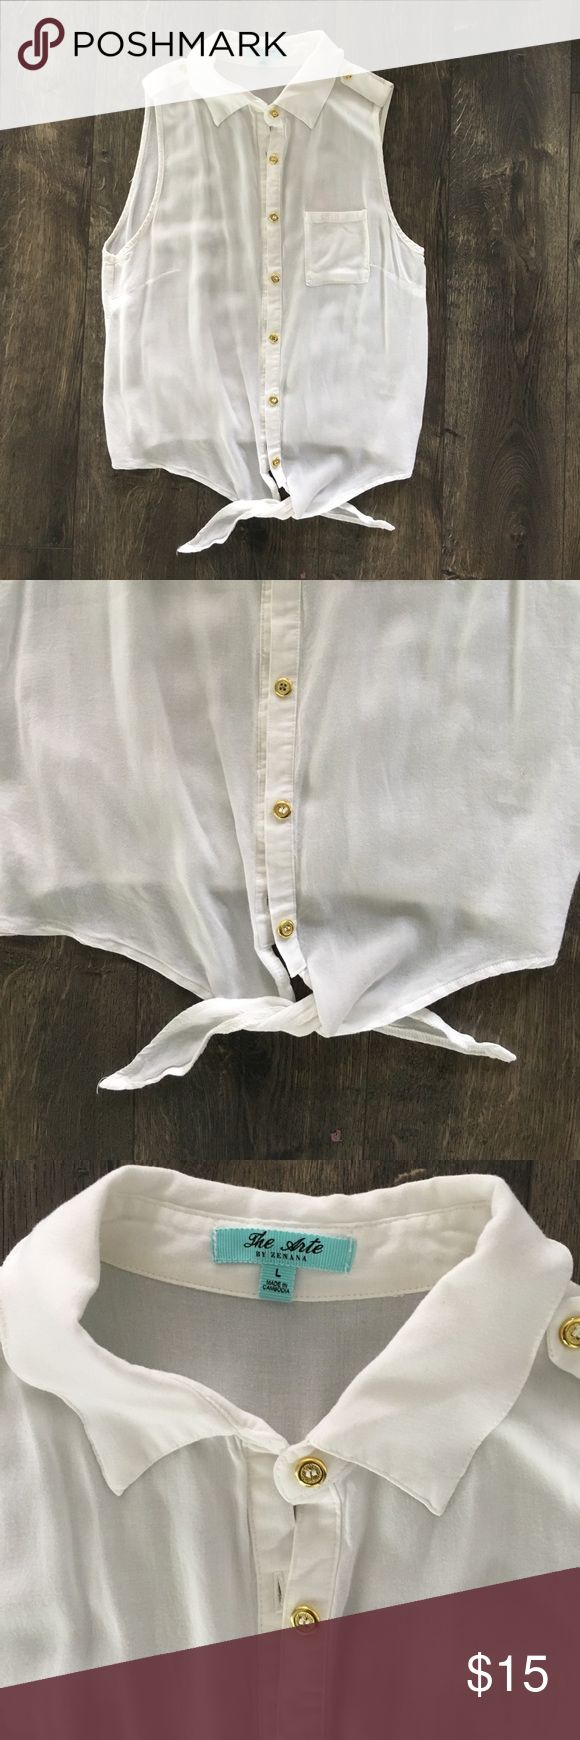 White sleeveless blouse with gold buttons Perfect summer shirt! Button up sleeveless blouse with gold buttons and tie at bottom. Fits more like a medium Tops Button Down Shirts